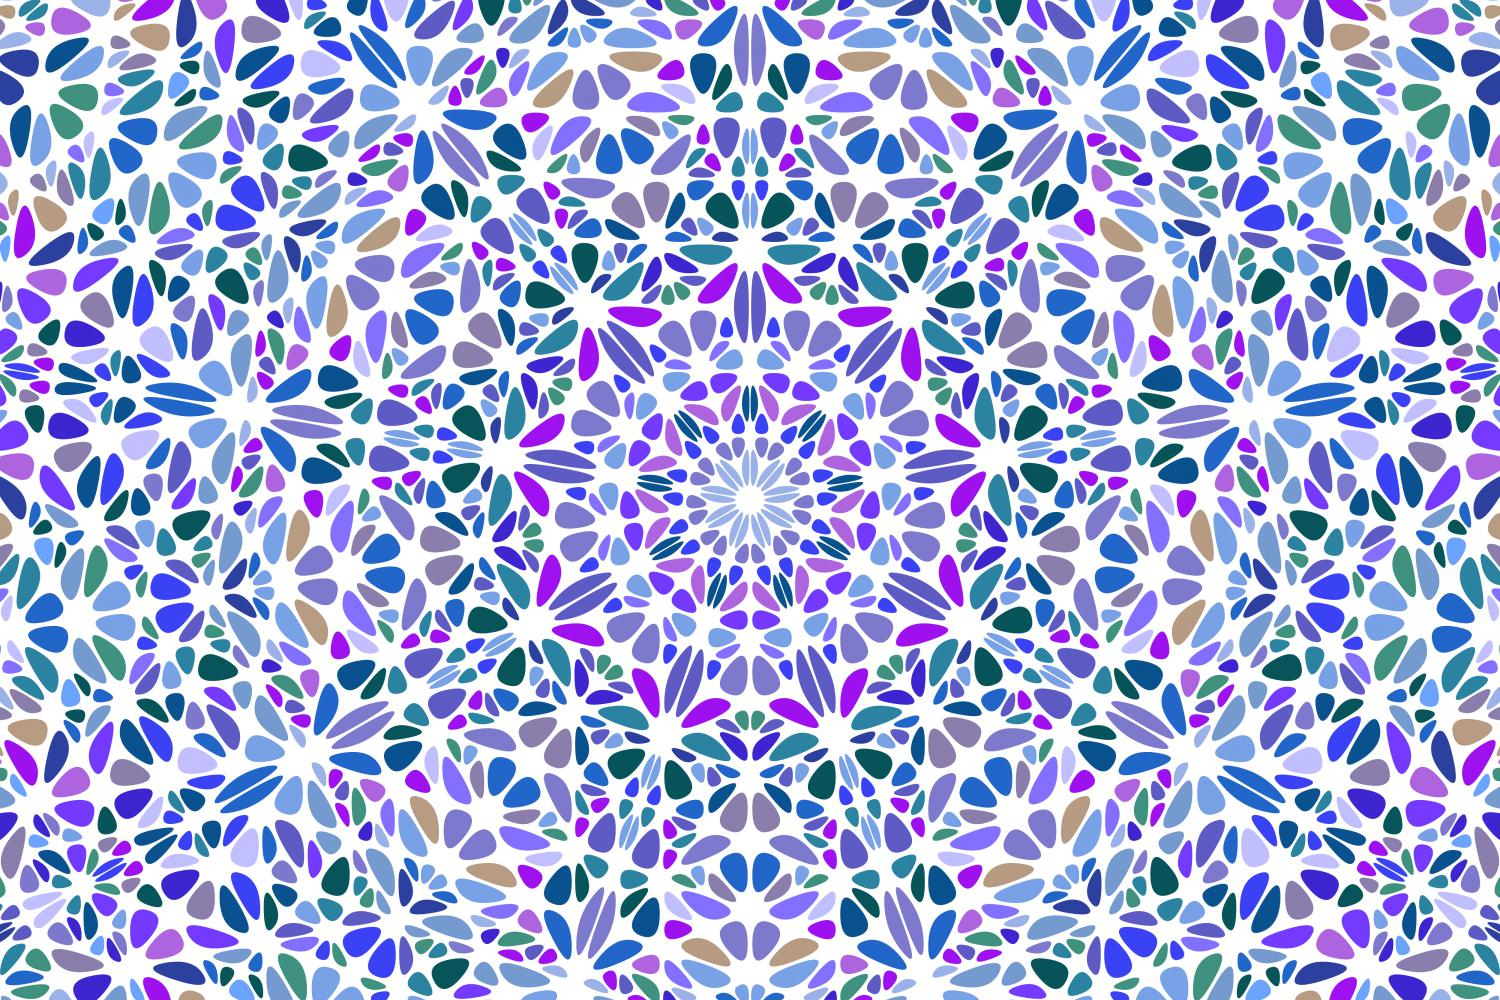 48 Floral Mandala Backgrounds example image 9